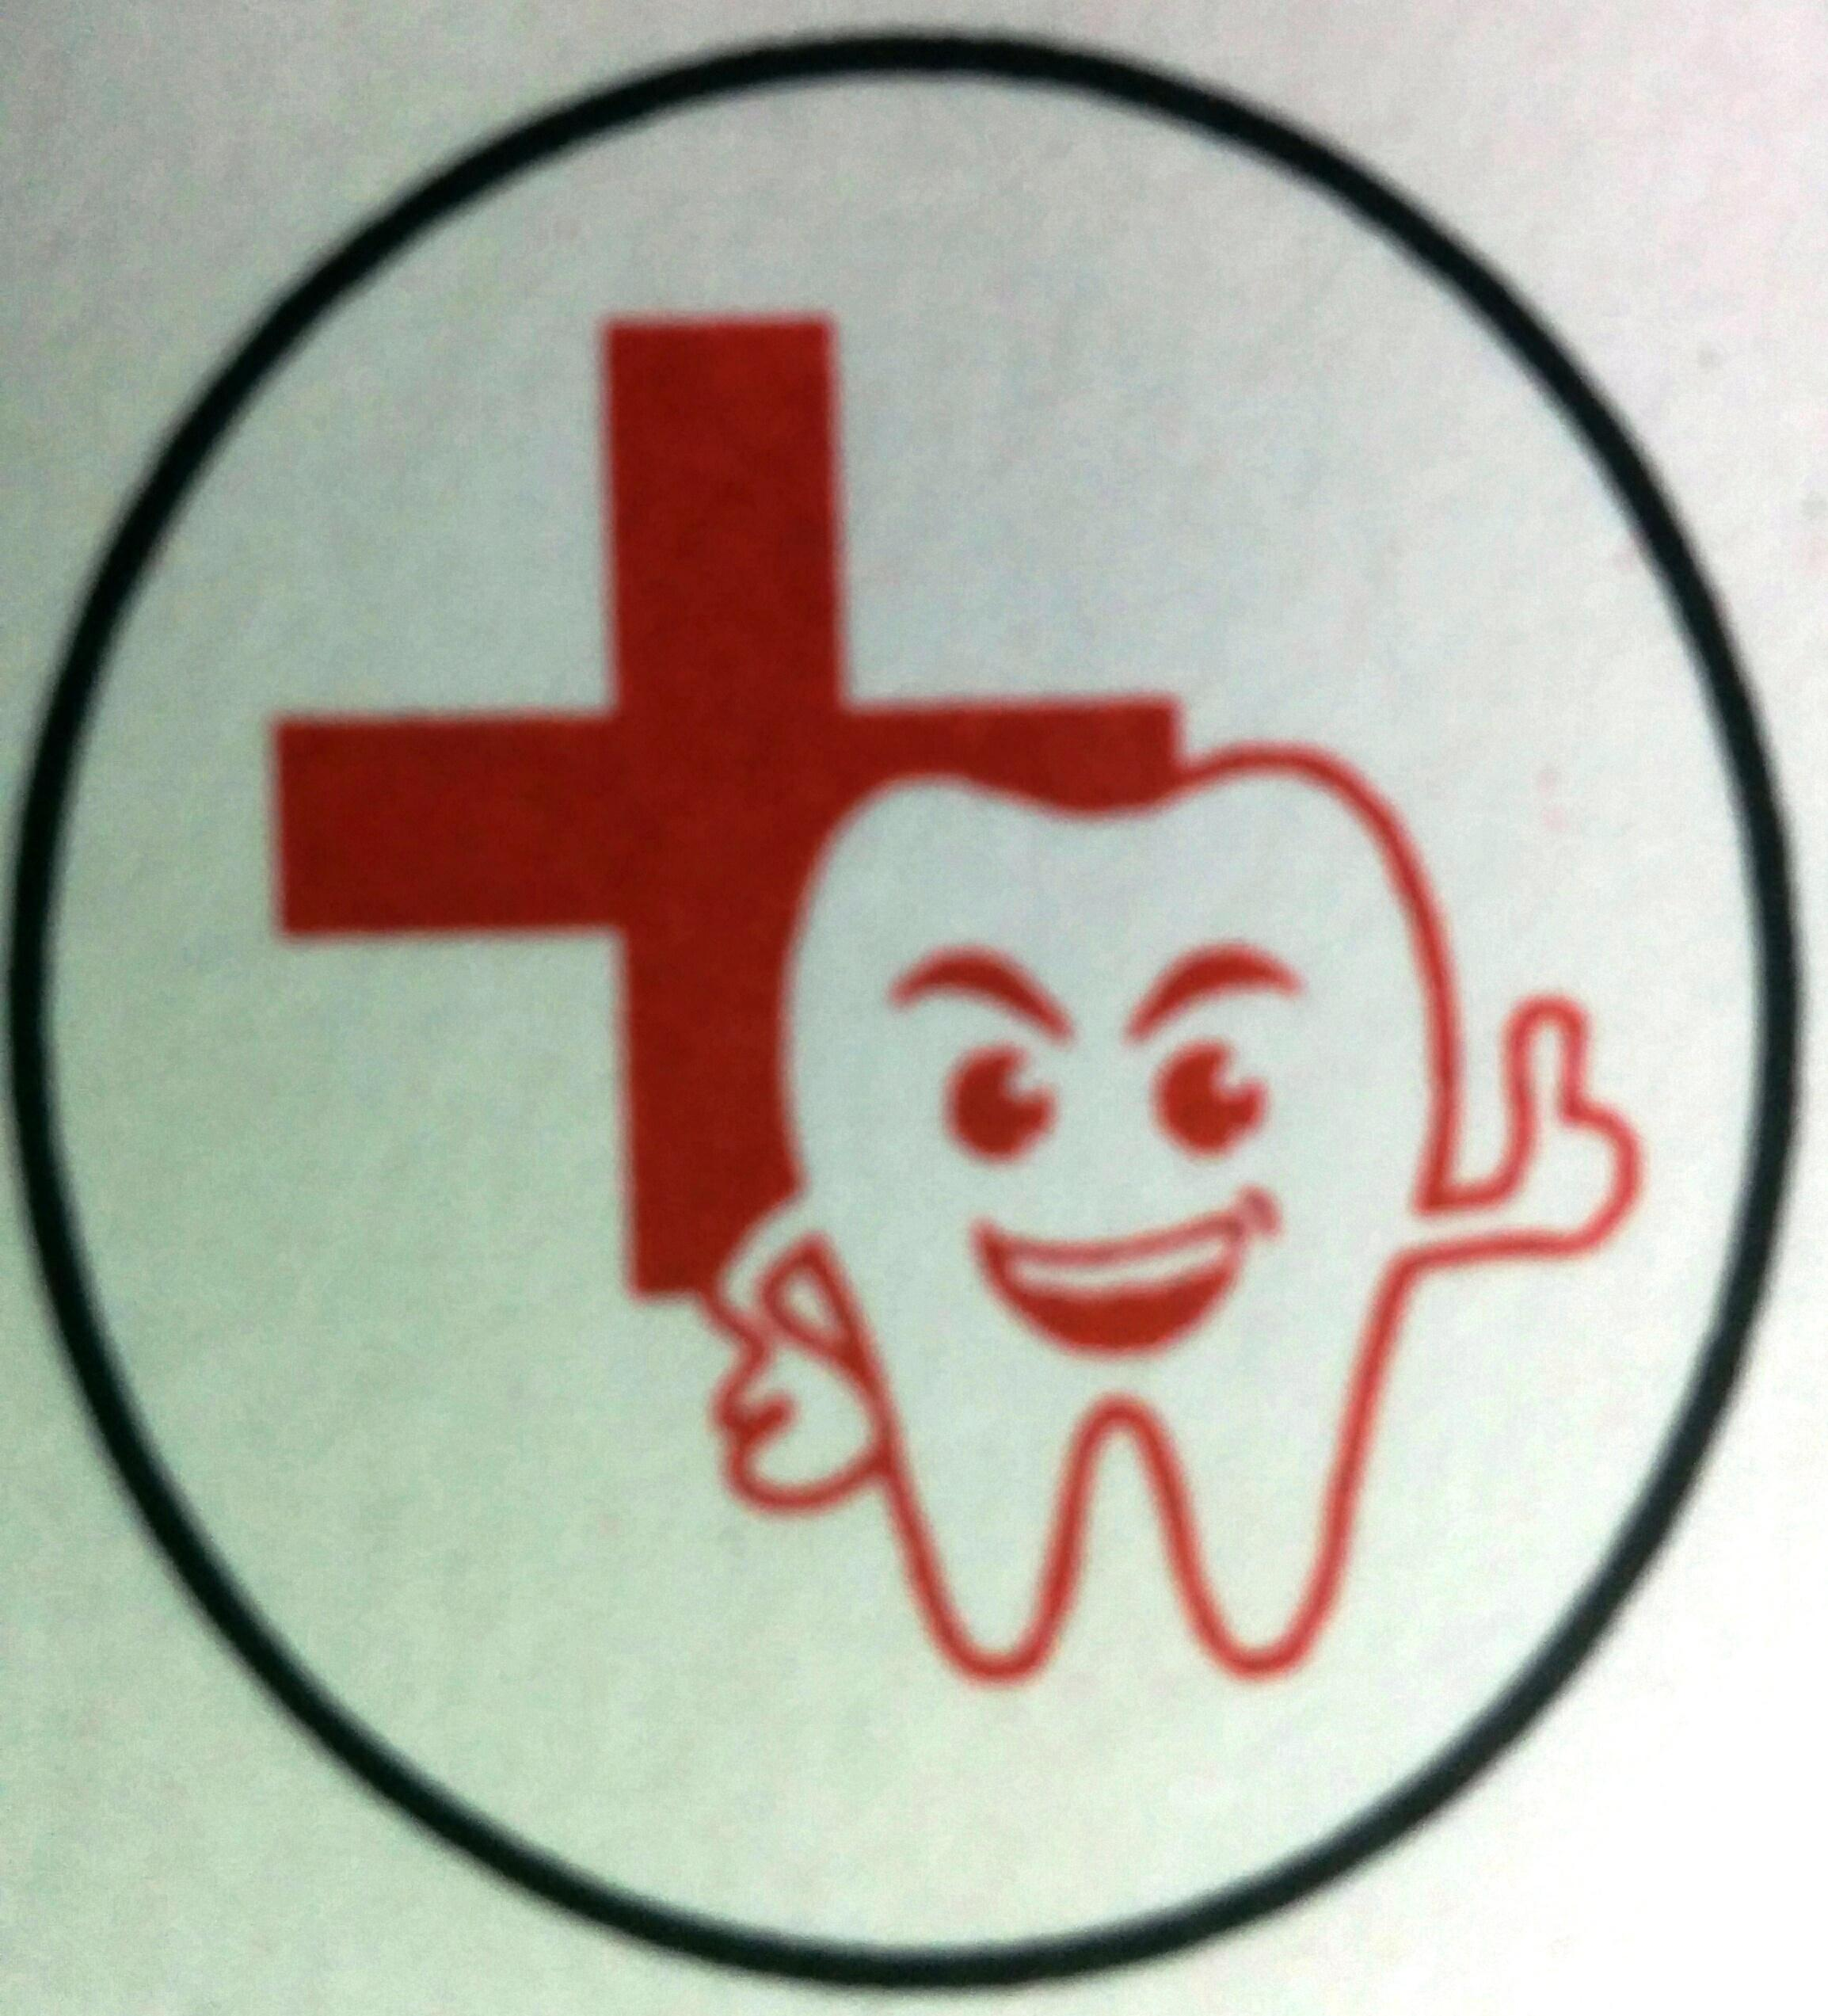 Dr. Johar's Dental Clinic